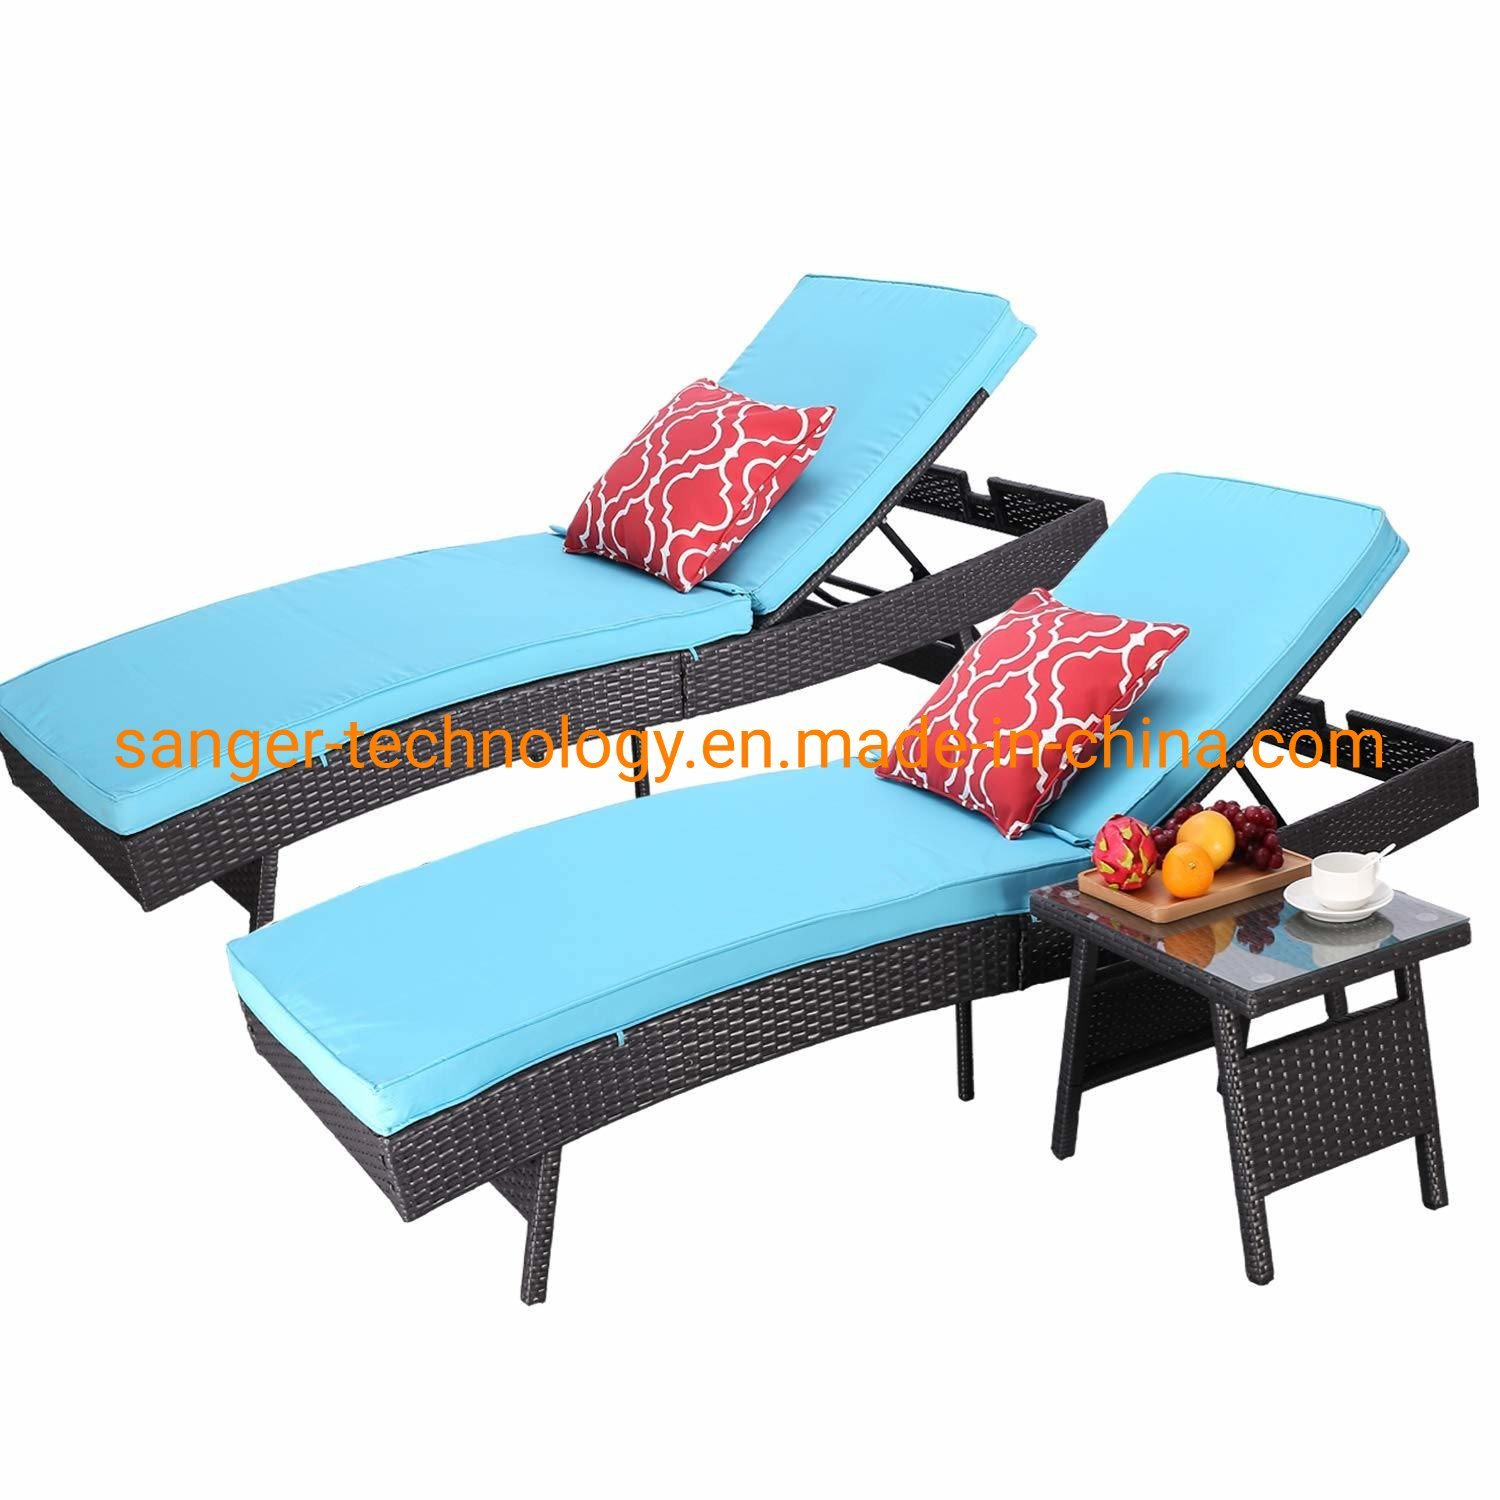 Hot Item Adjustable Patio Outdoor Furniture Rattan Wicker Chaise Lounge Chair Sofa Couch Bed With Turquoise Cushion 2 Pcs Chaise Lounge And A Table